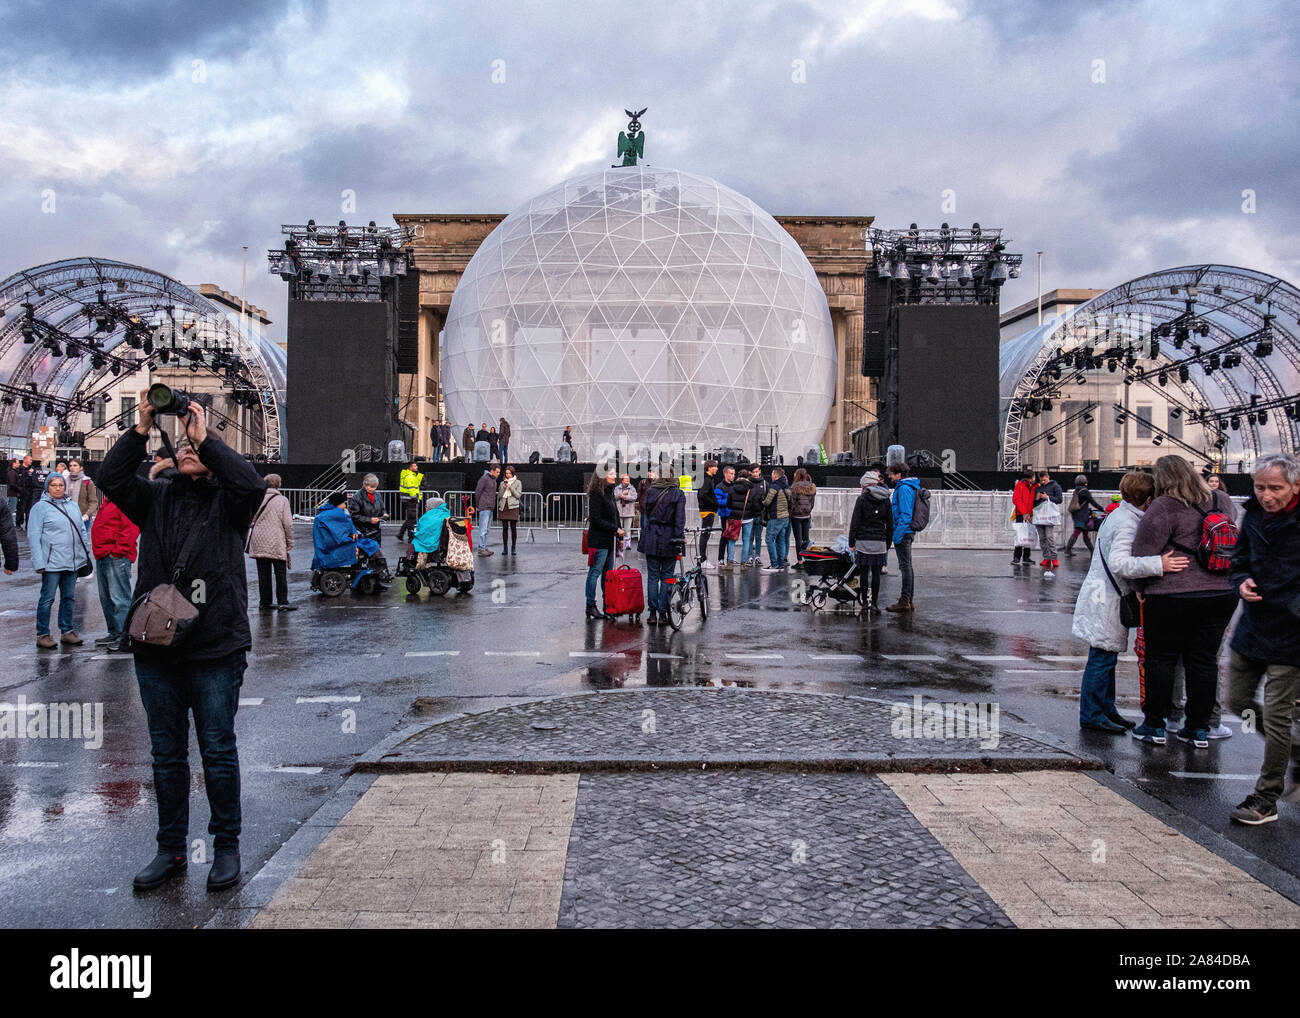 Celebrating 30th Anniversary of the Fall of the Berlin Wall. Concert stage and Huge white globe that is illuminated with messages of peace after dark at the Brandenburg gate, Straße des 17. Juni, Berlin Stock Photo